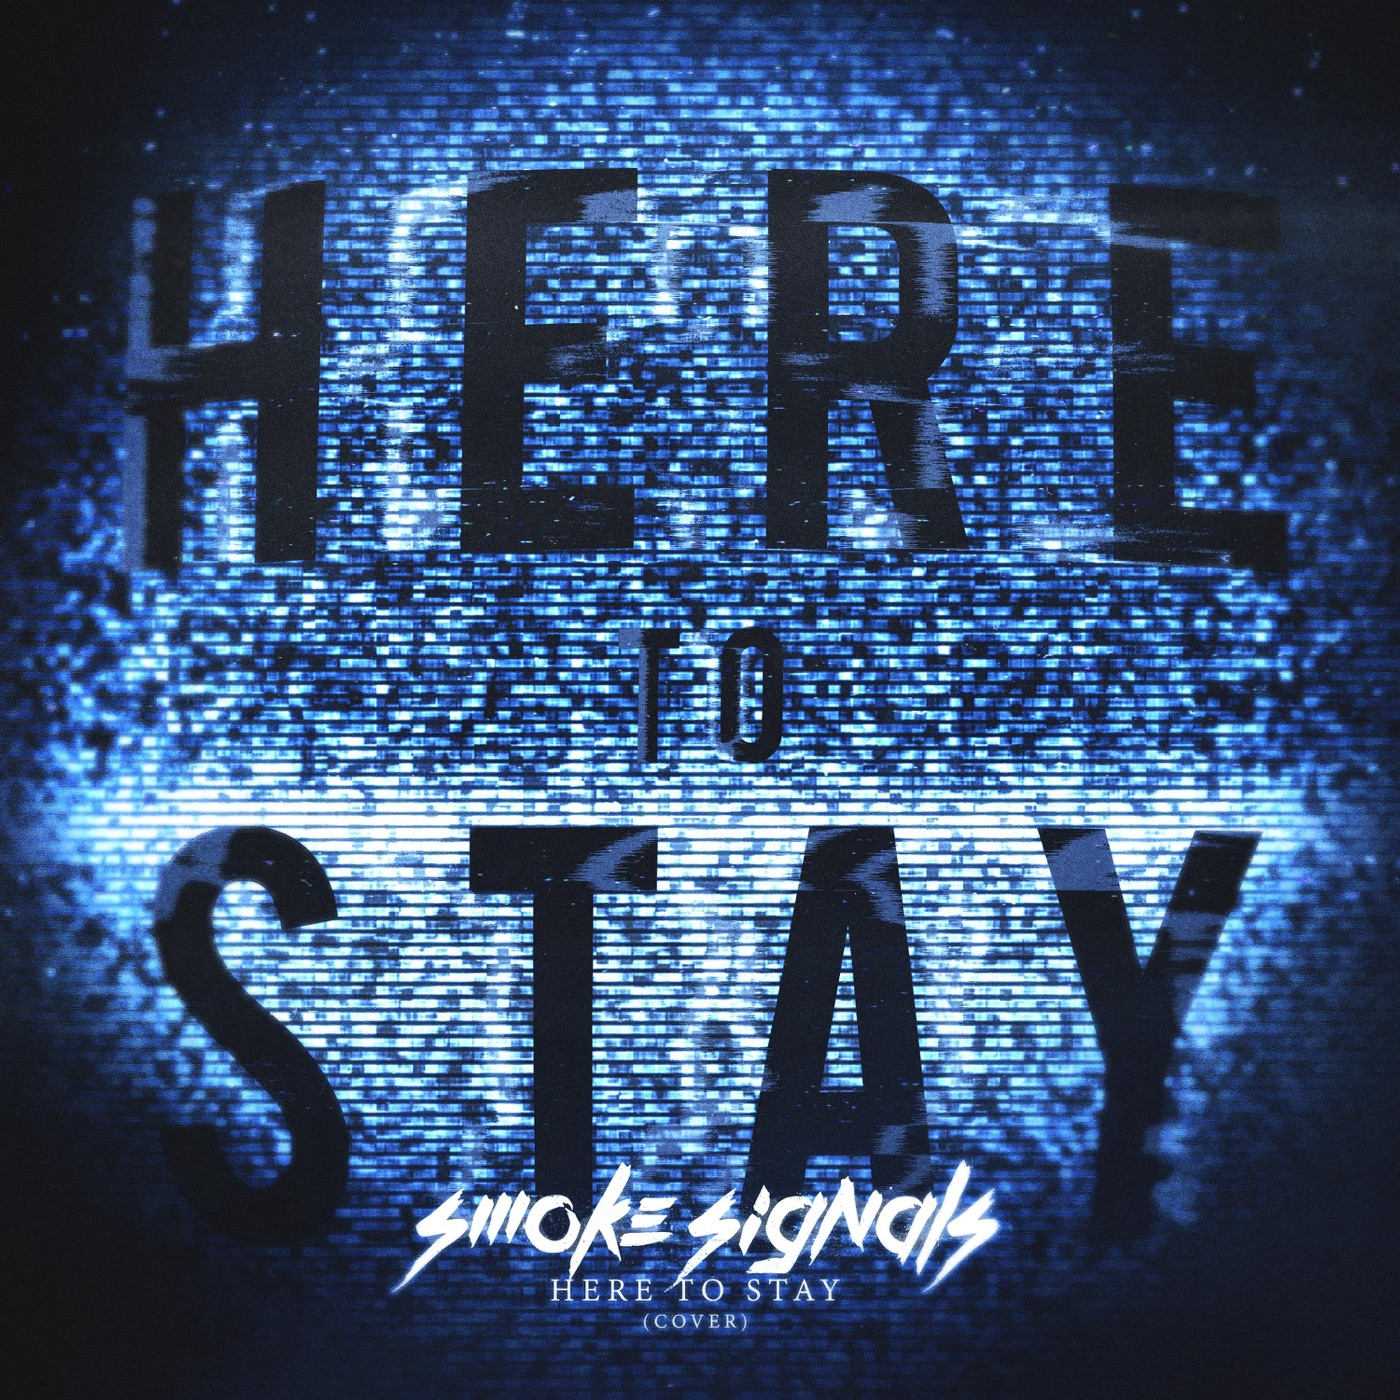 Smoke Signals - Here to Stay (KoRn Cover) [Single] (2019)